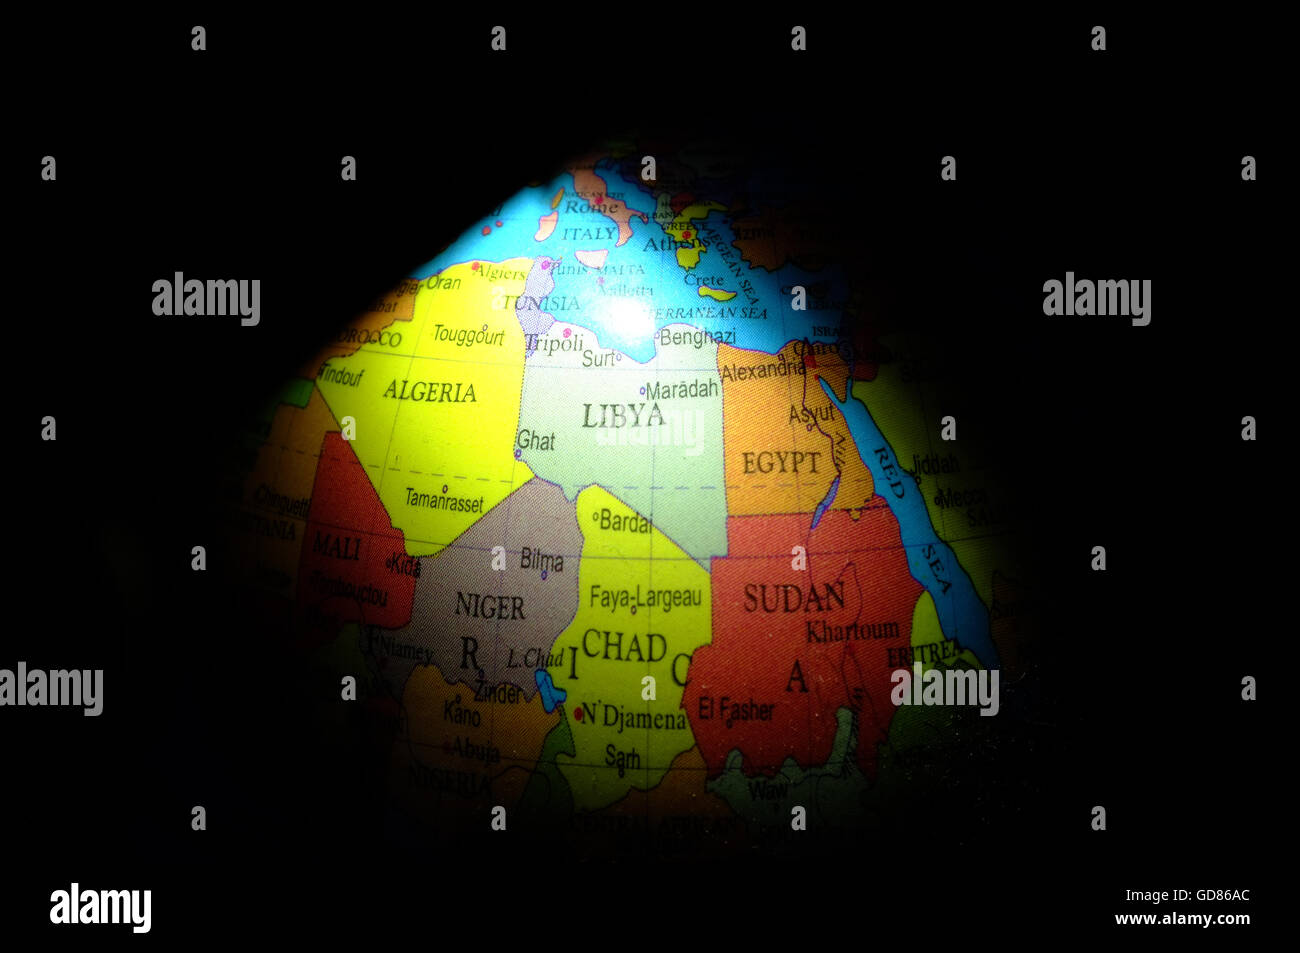 The countries of Northern Africa highlighted on a child's globe. - Stock Image